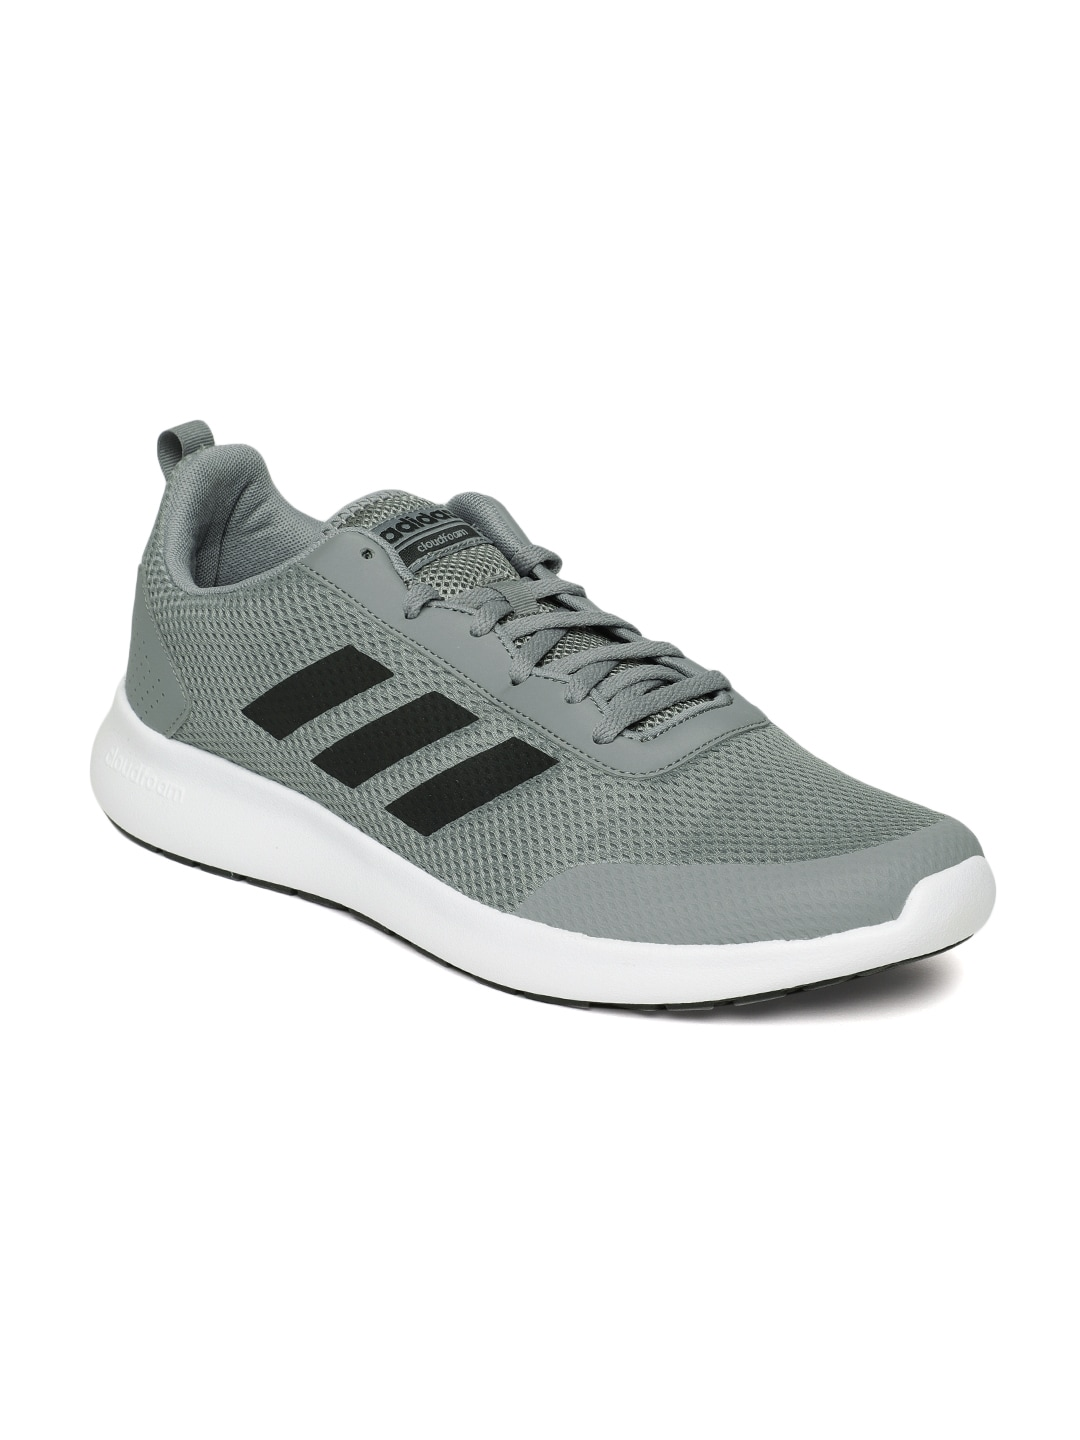 Adidas Shoes - Buy Adidas Shoes for Men   Women Online - Myntra 2fde280736a1